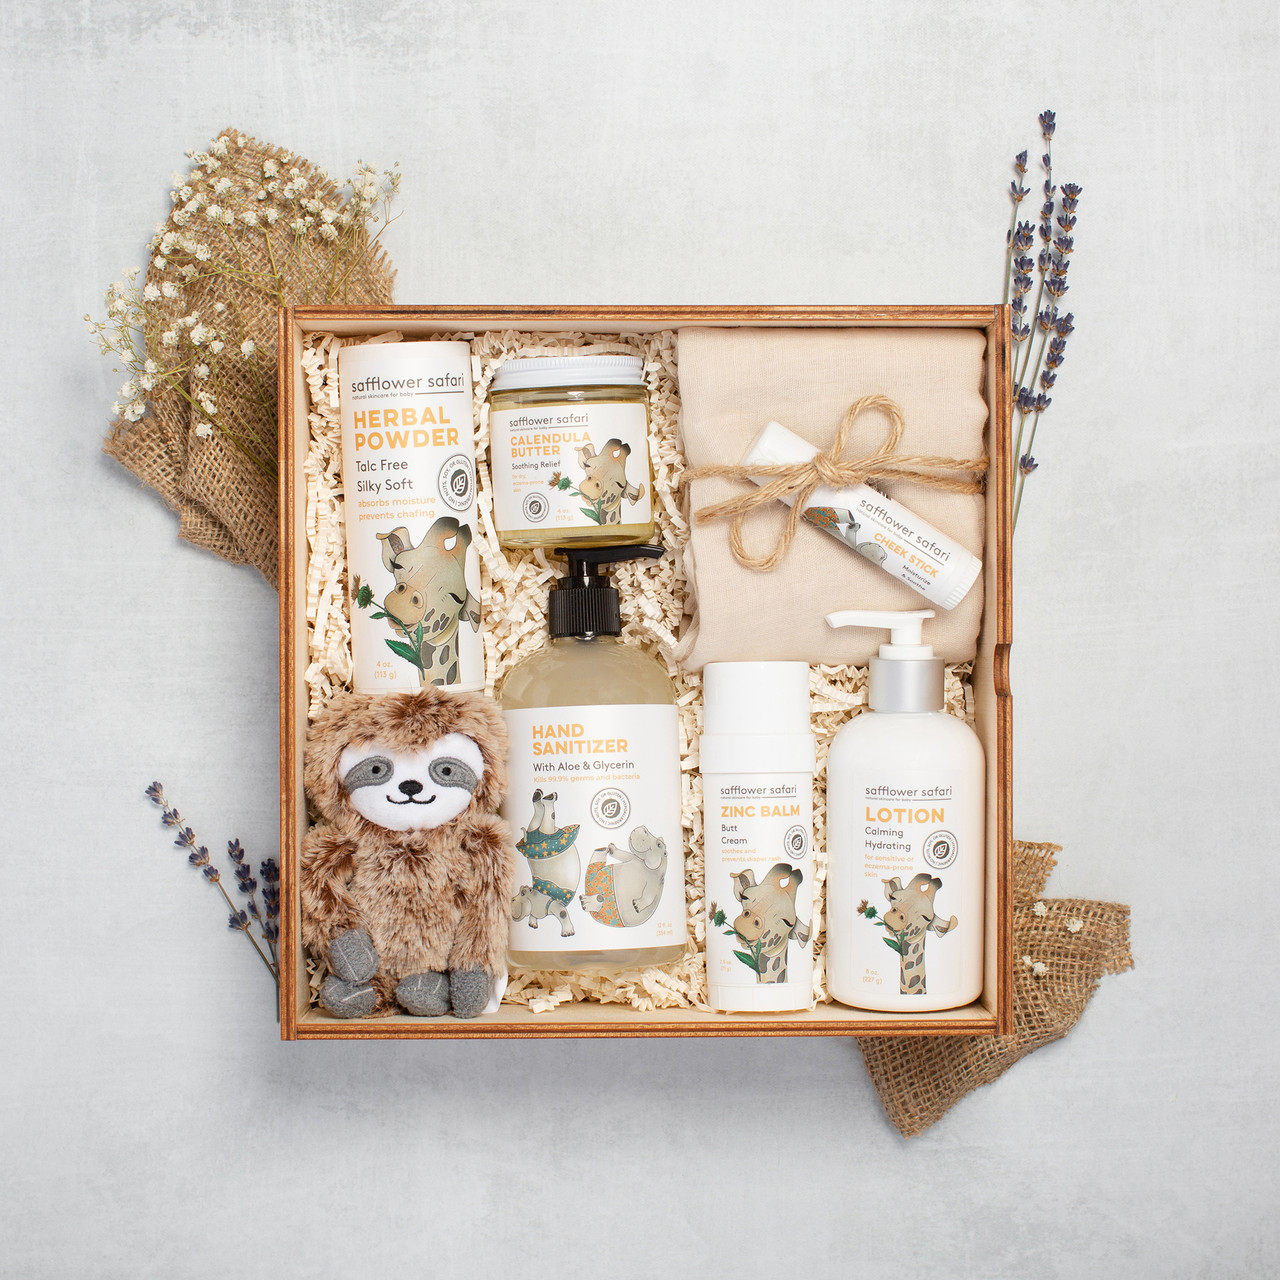 Curated Gift for Baby - New Parents - Luxury Gift Box for Baby - Safflower Saffari with Baby Sloth